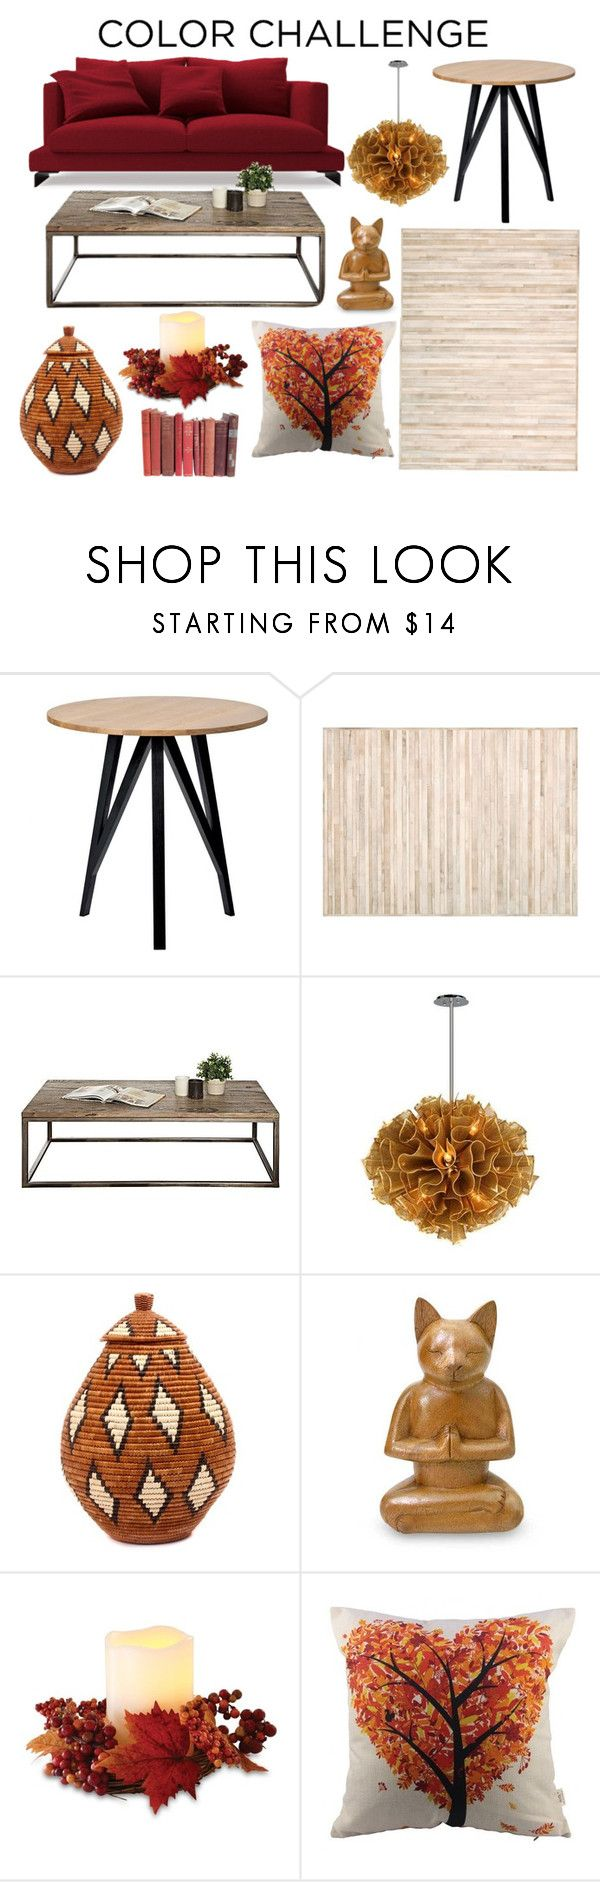 """Pumpkin and Burgundy Decor"" by bloguerosa on Polyvore featuring interior, interiors, interior design, home, home decor, interior decorating, Calvin Klein, Corbett Lighting, NOVICA and Order Home Collection"